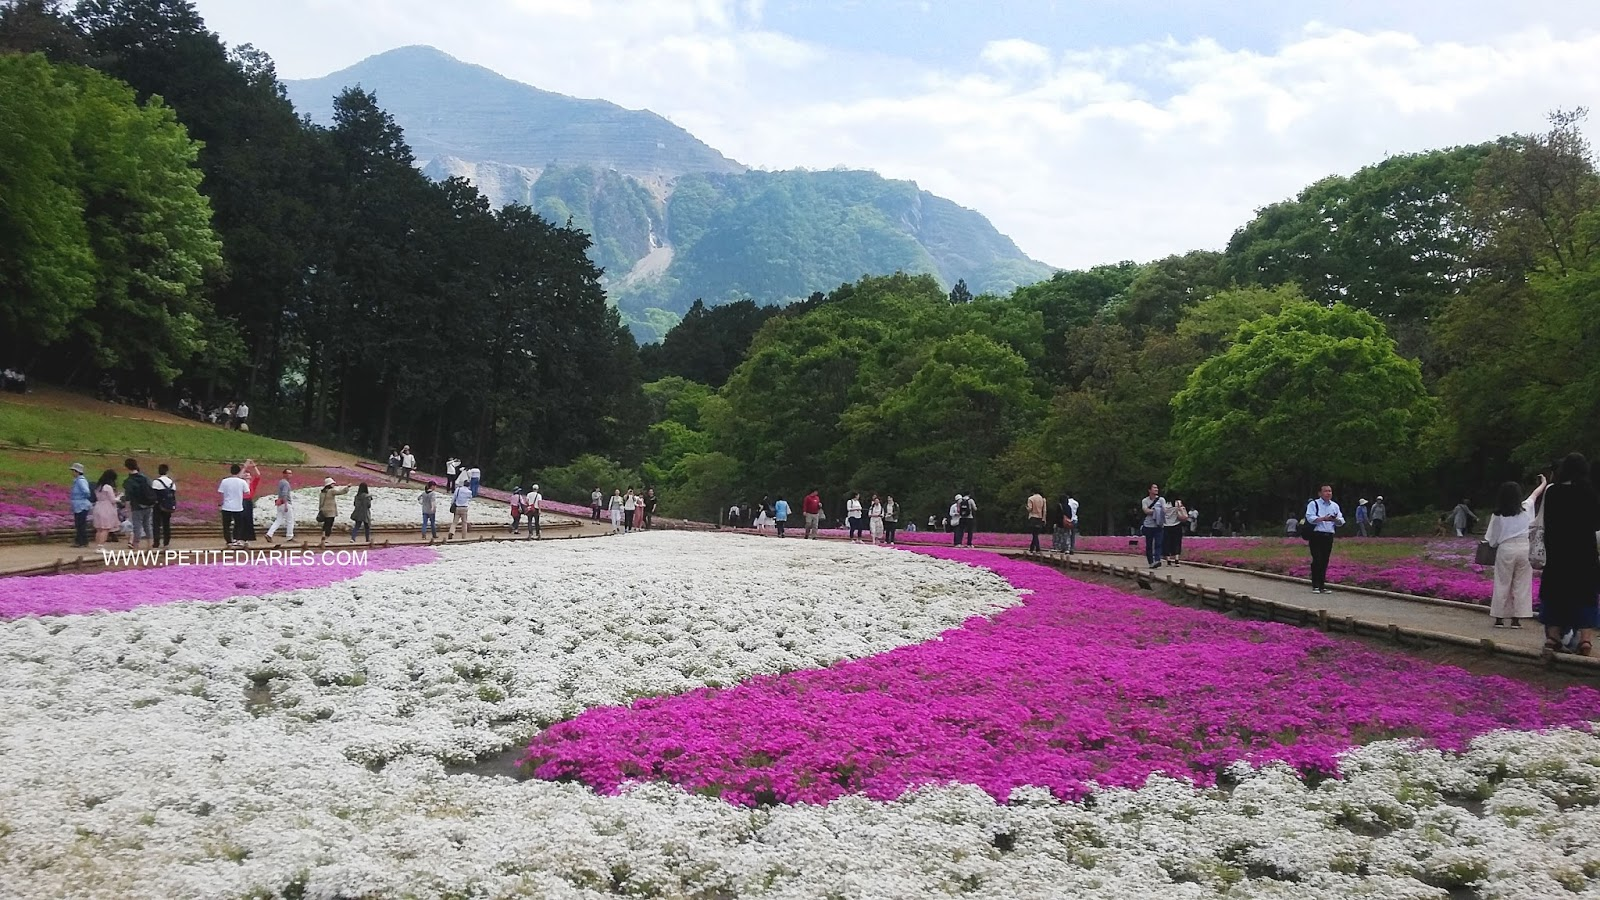 shibasakura moss phlox viewing in japan